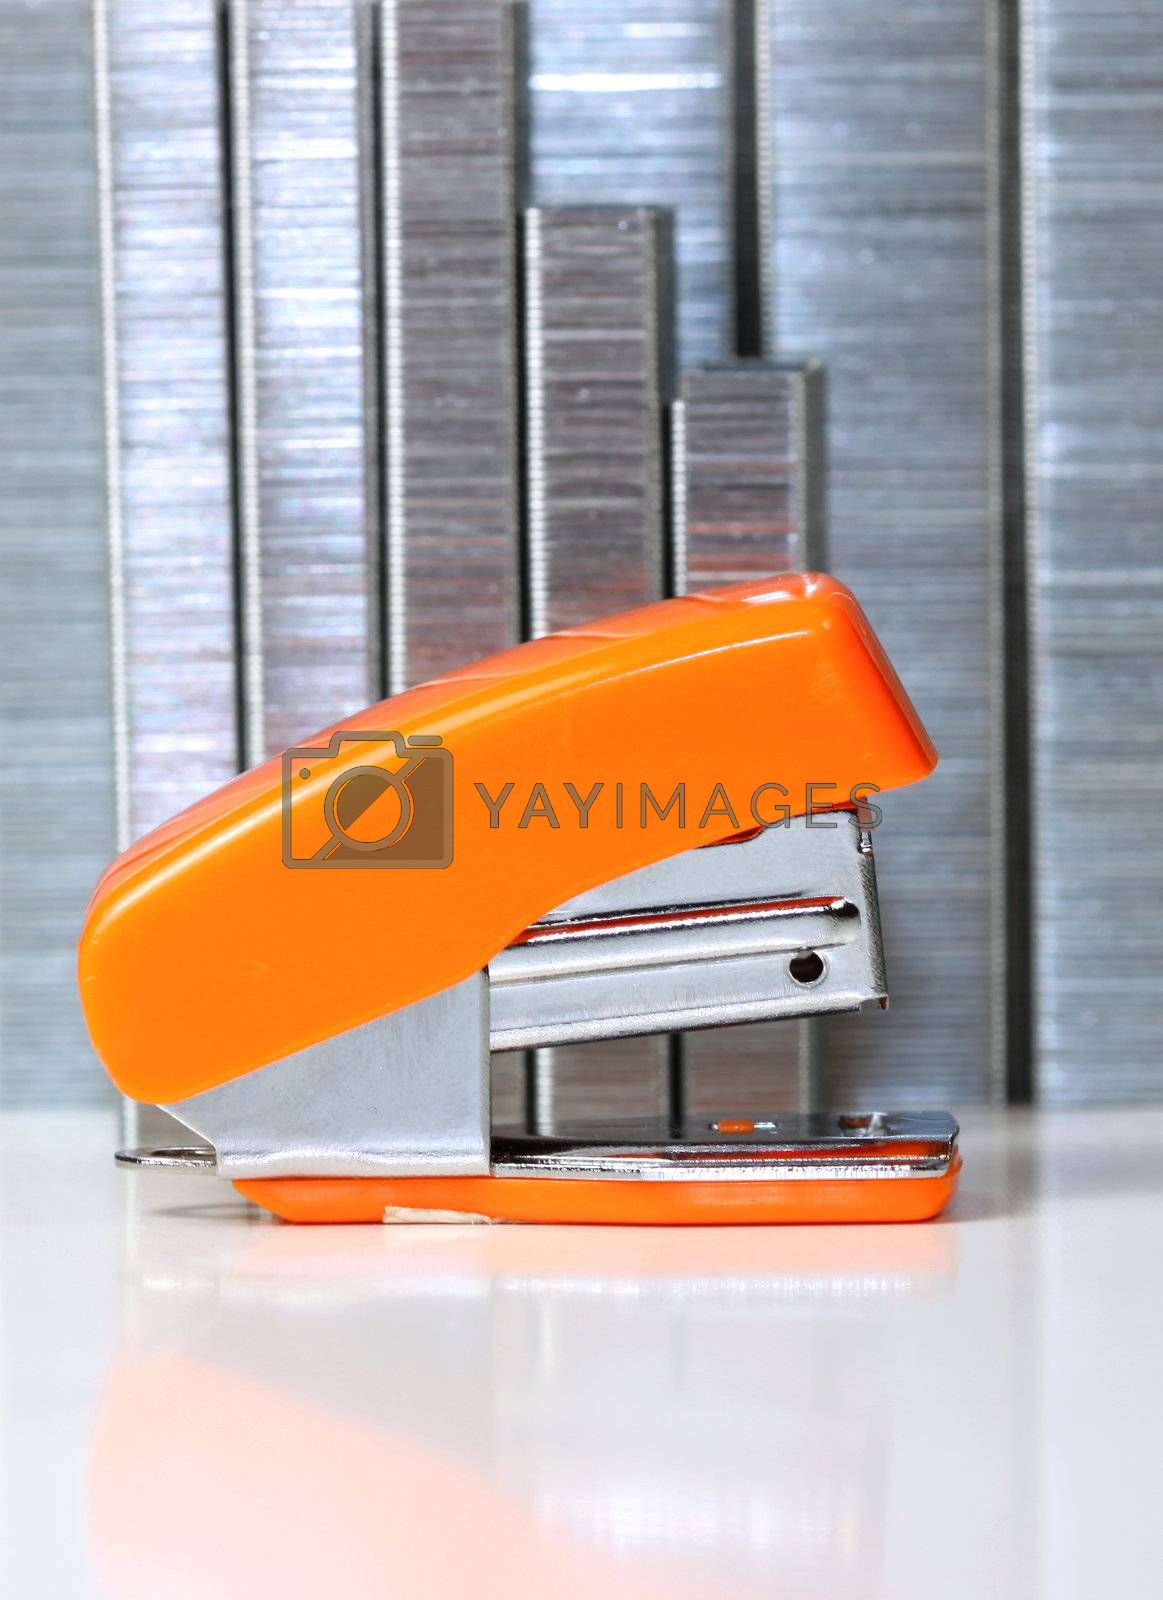 Royalty free image of Stapler and staples by snehit